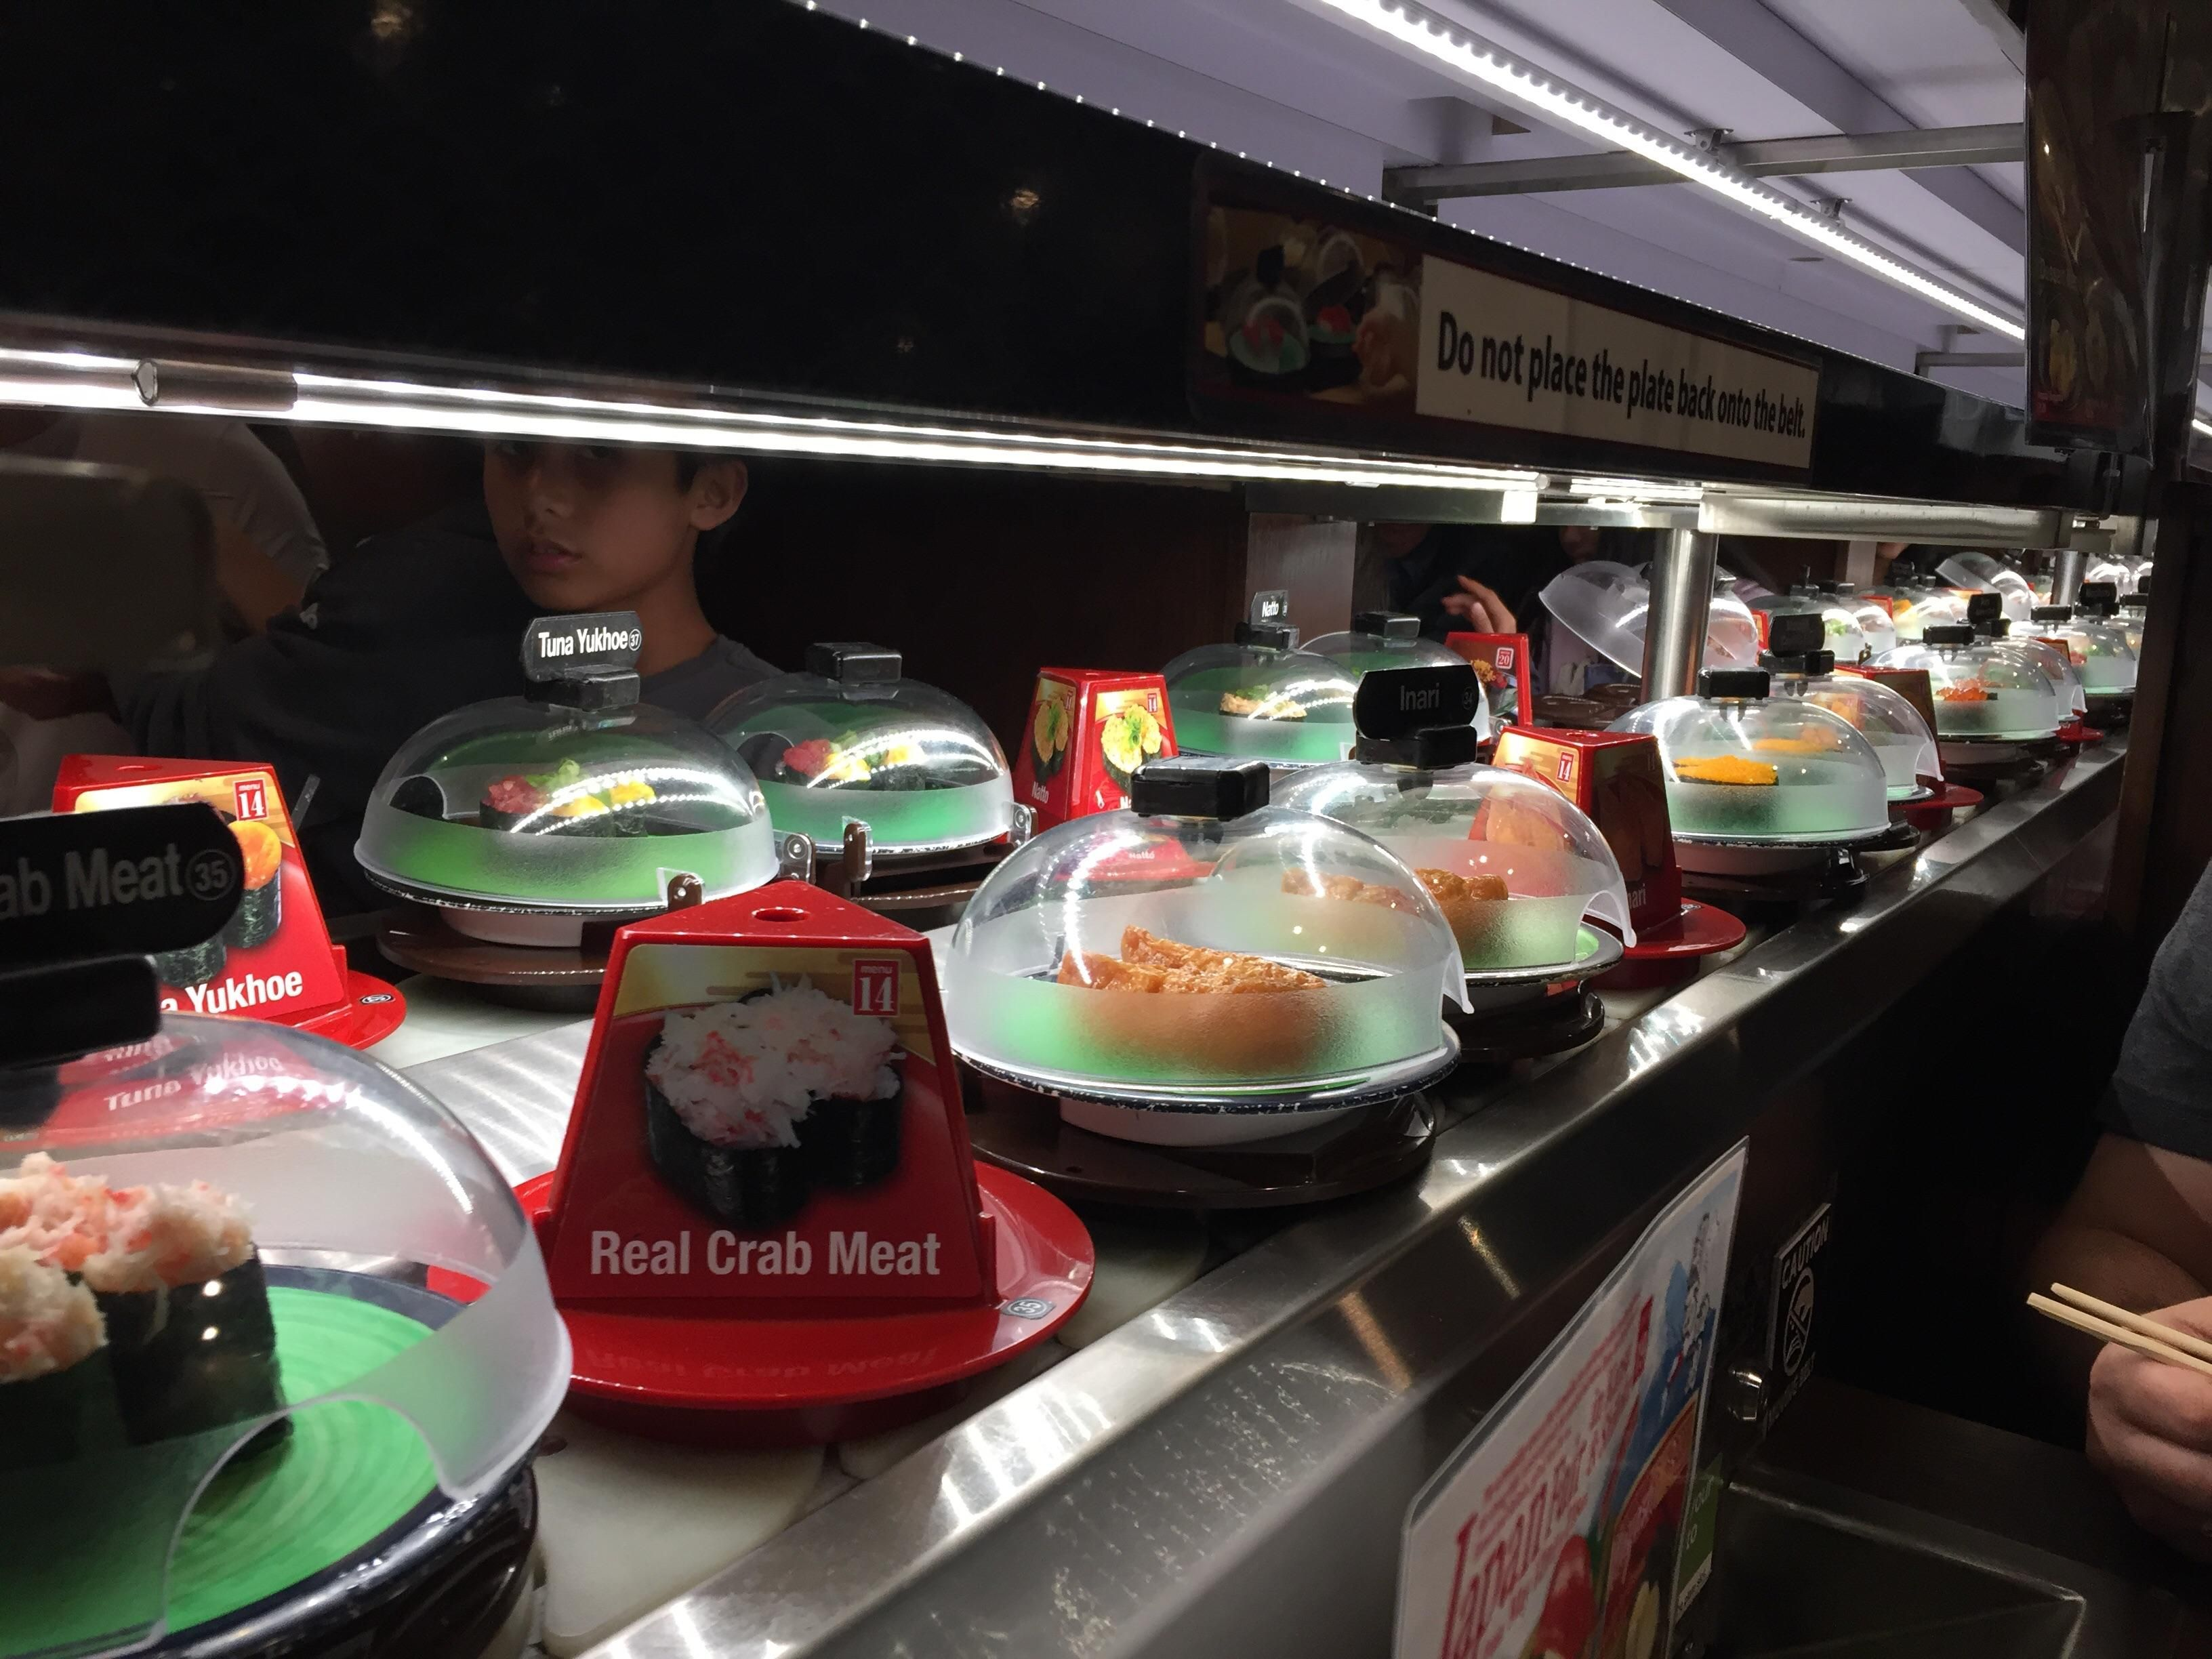 [I Ate] At a revolving Sushi Bar in Cupertino CA #recipes #food #cooking #delicious #foodie #foodrecipes #cook #recipe #health